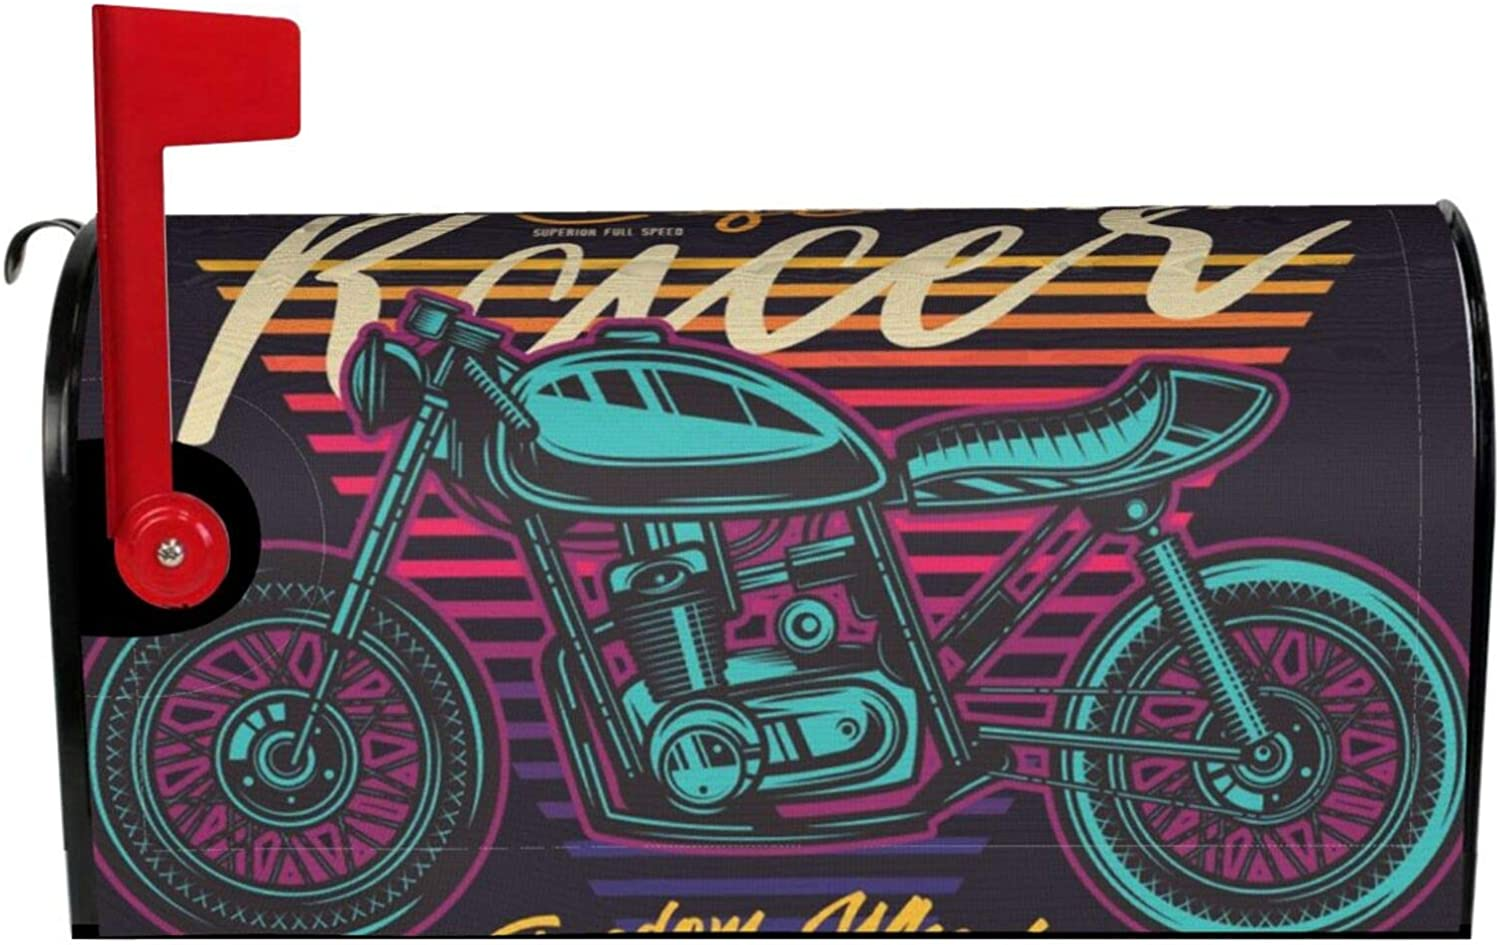 biye Vintage Cafe Racer Motorcycle Poster.Mailbox Cover Magnetic Standard size25.5x21 inPost Box Cover Post Box Parcel Post Office Box Cover Home Garden Decoration